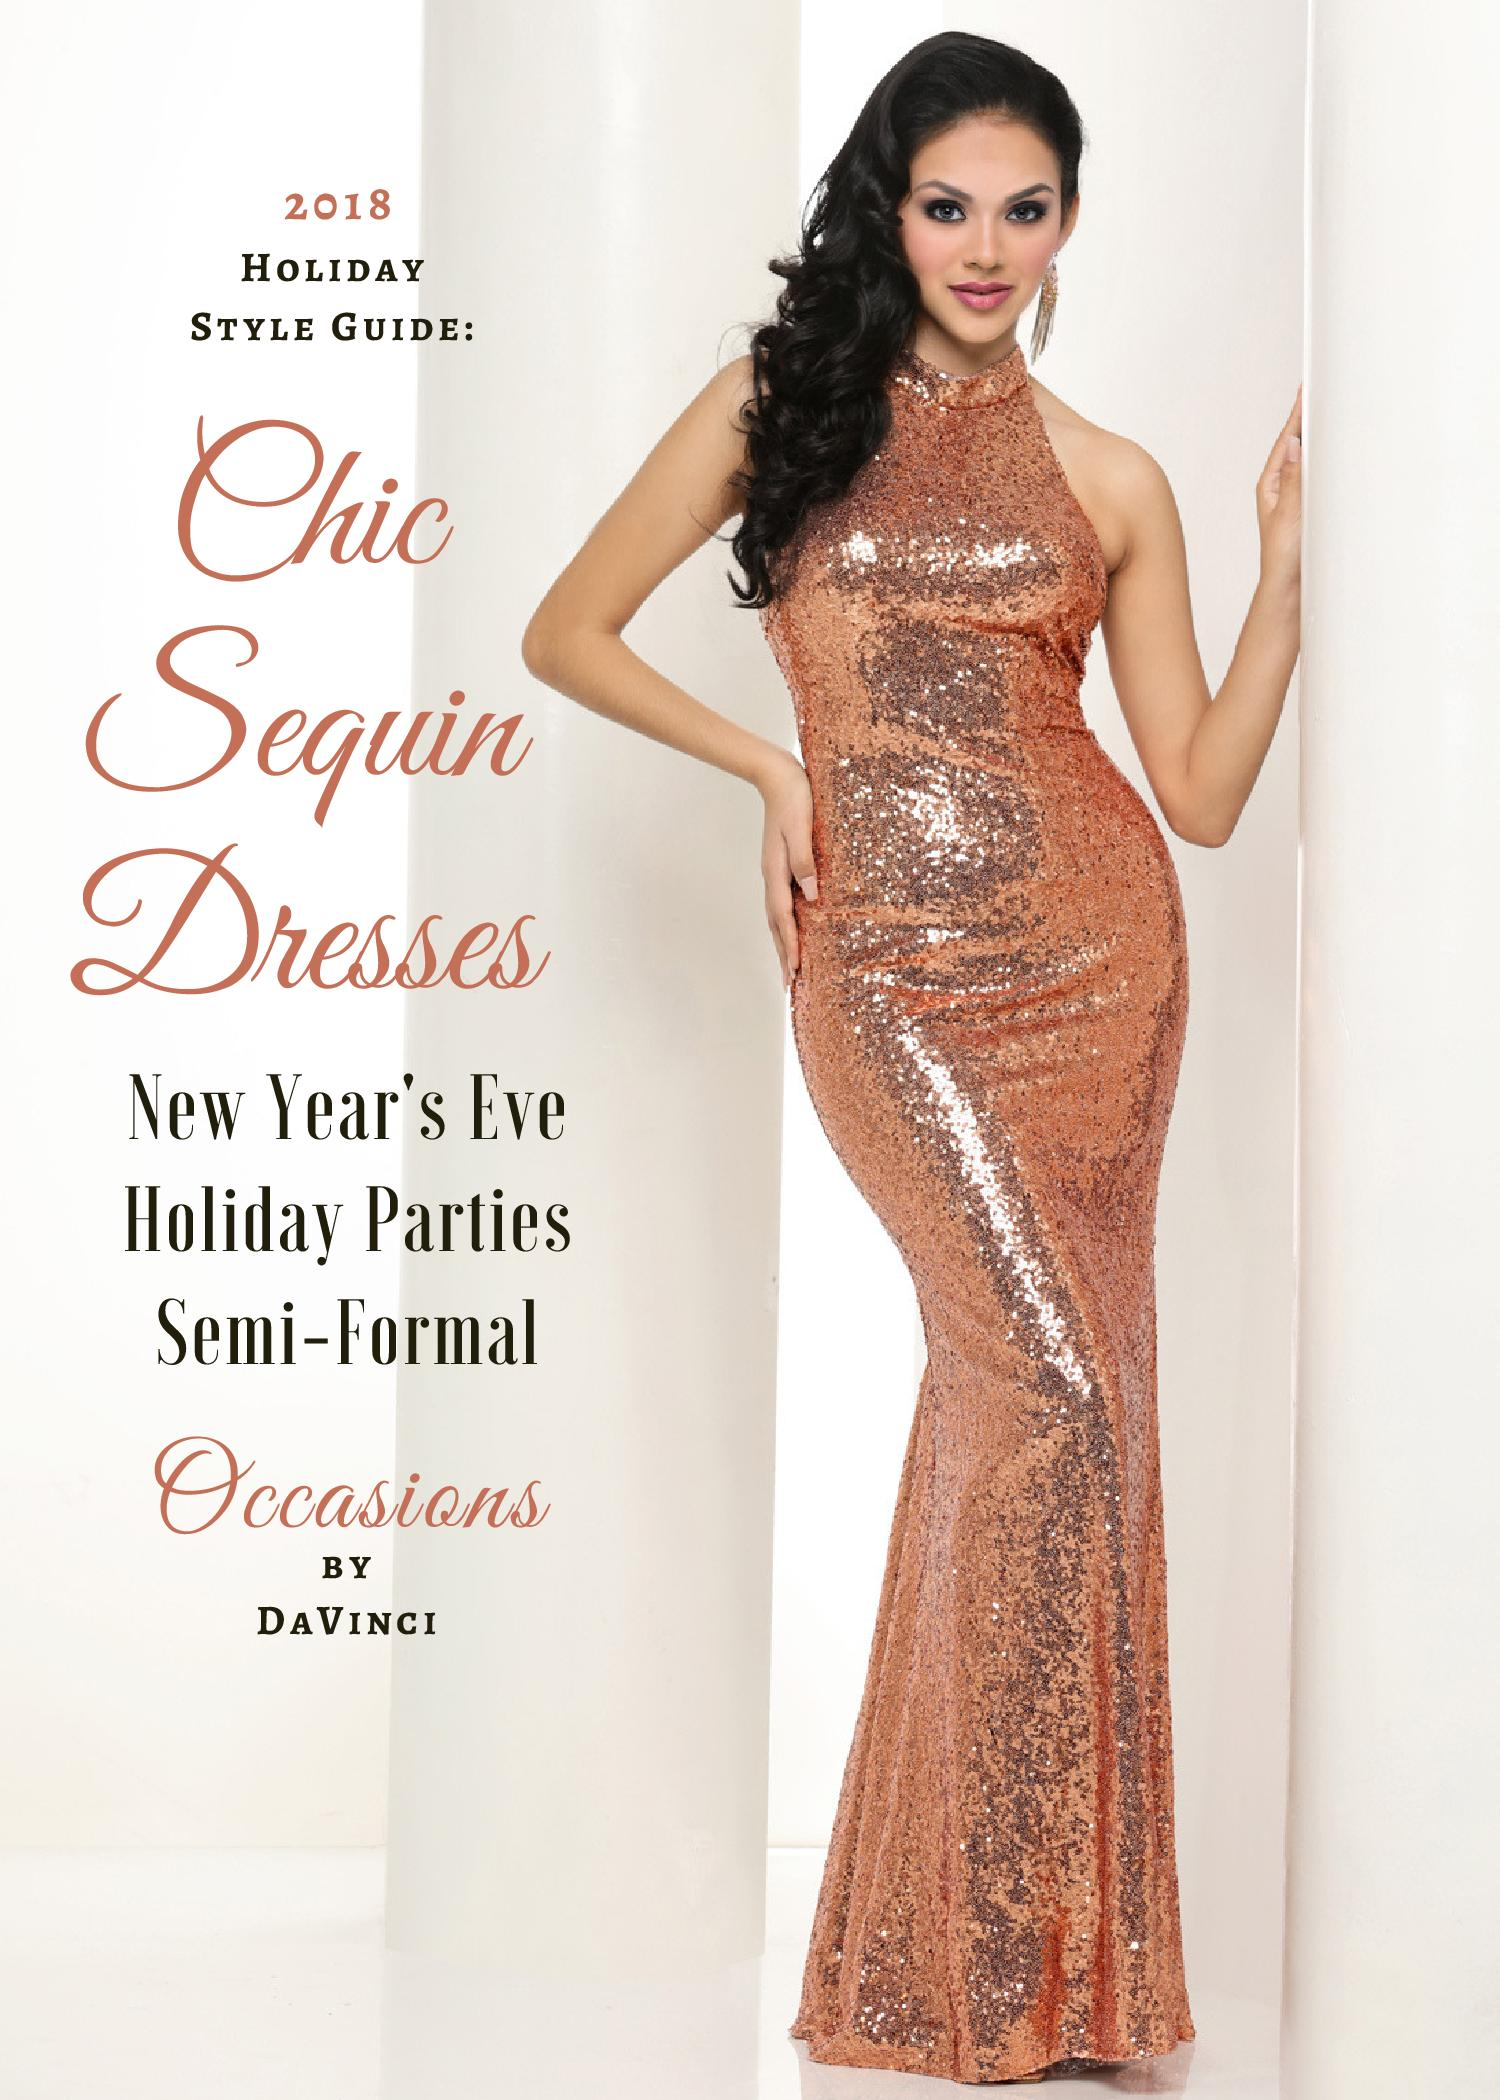 Party Chic Chic Sequin Dresses Nye Holiday Parties More Davinci Bridal Blog